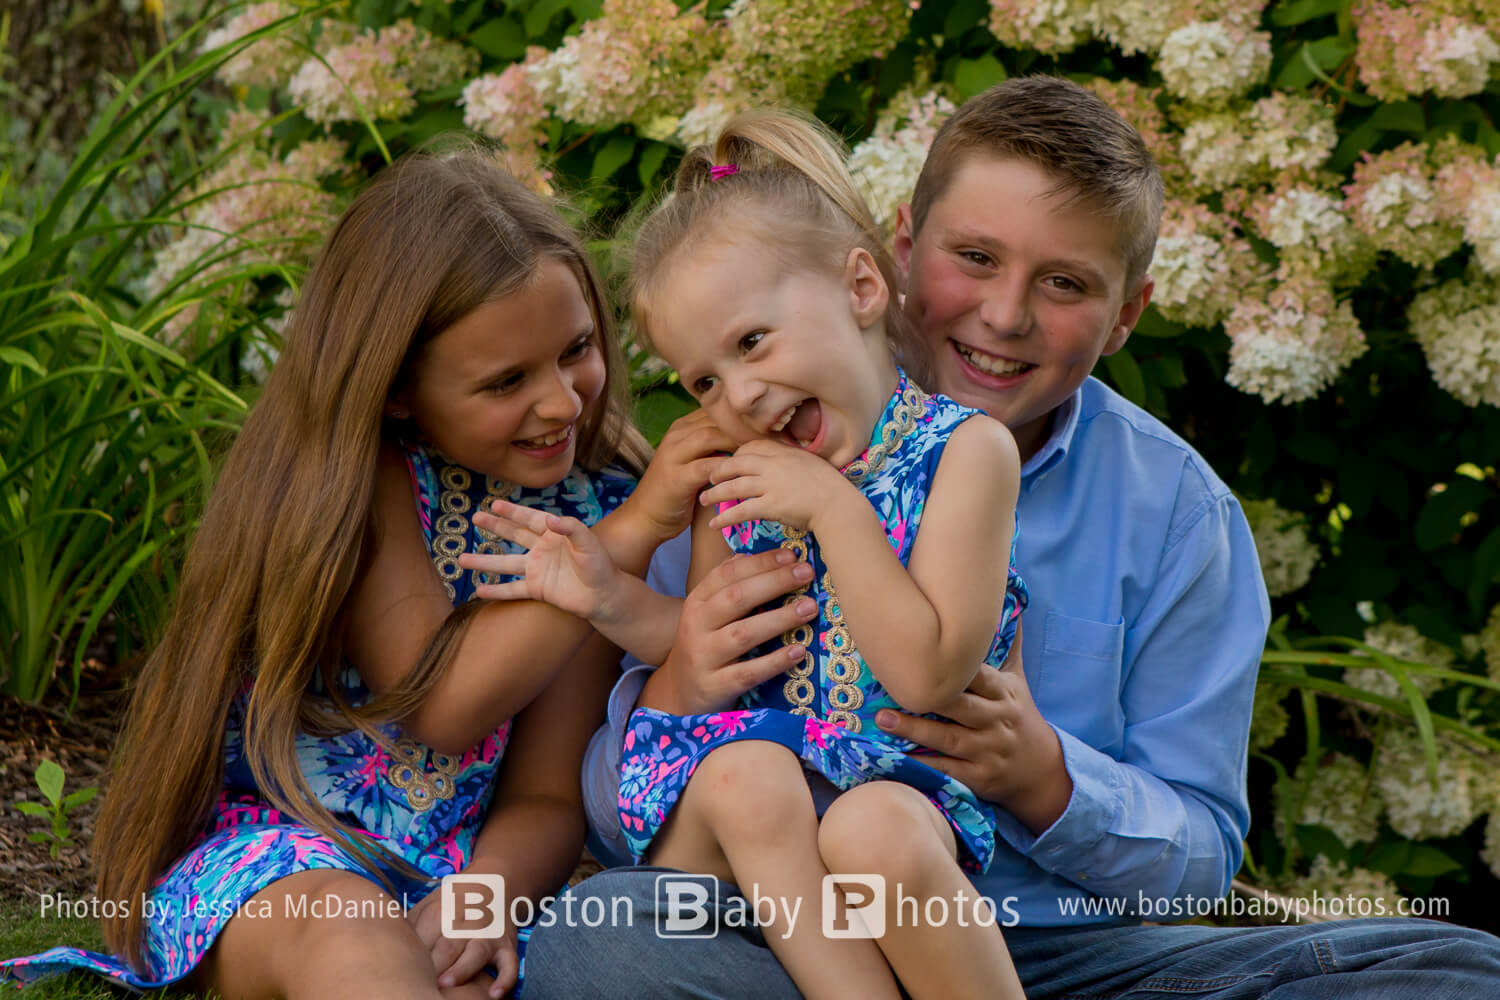 North Attleboro: Spring flowers and cute kids